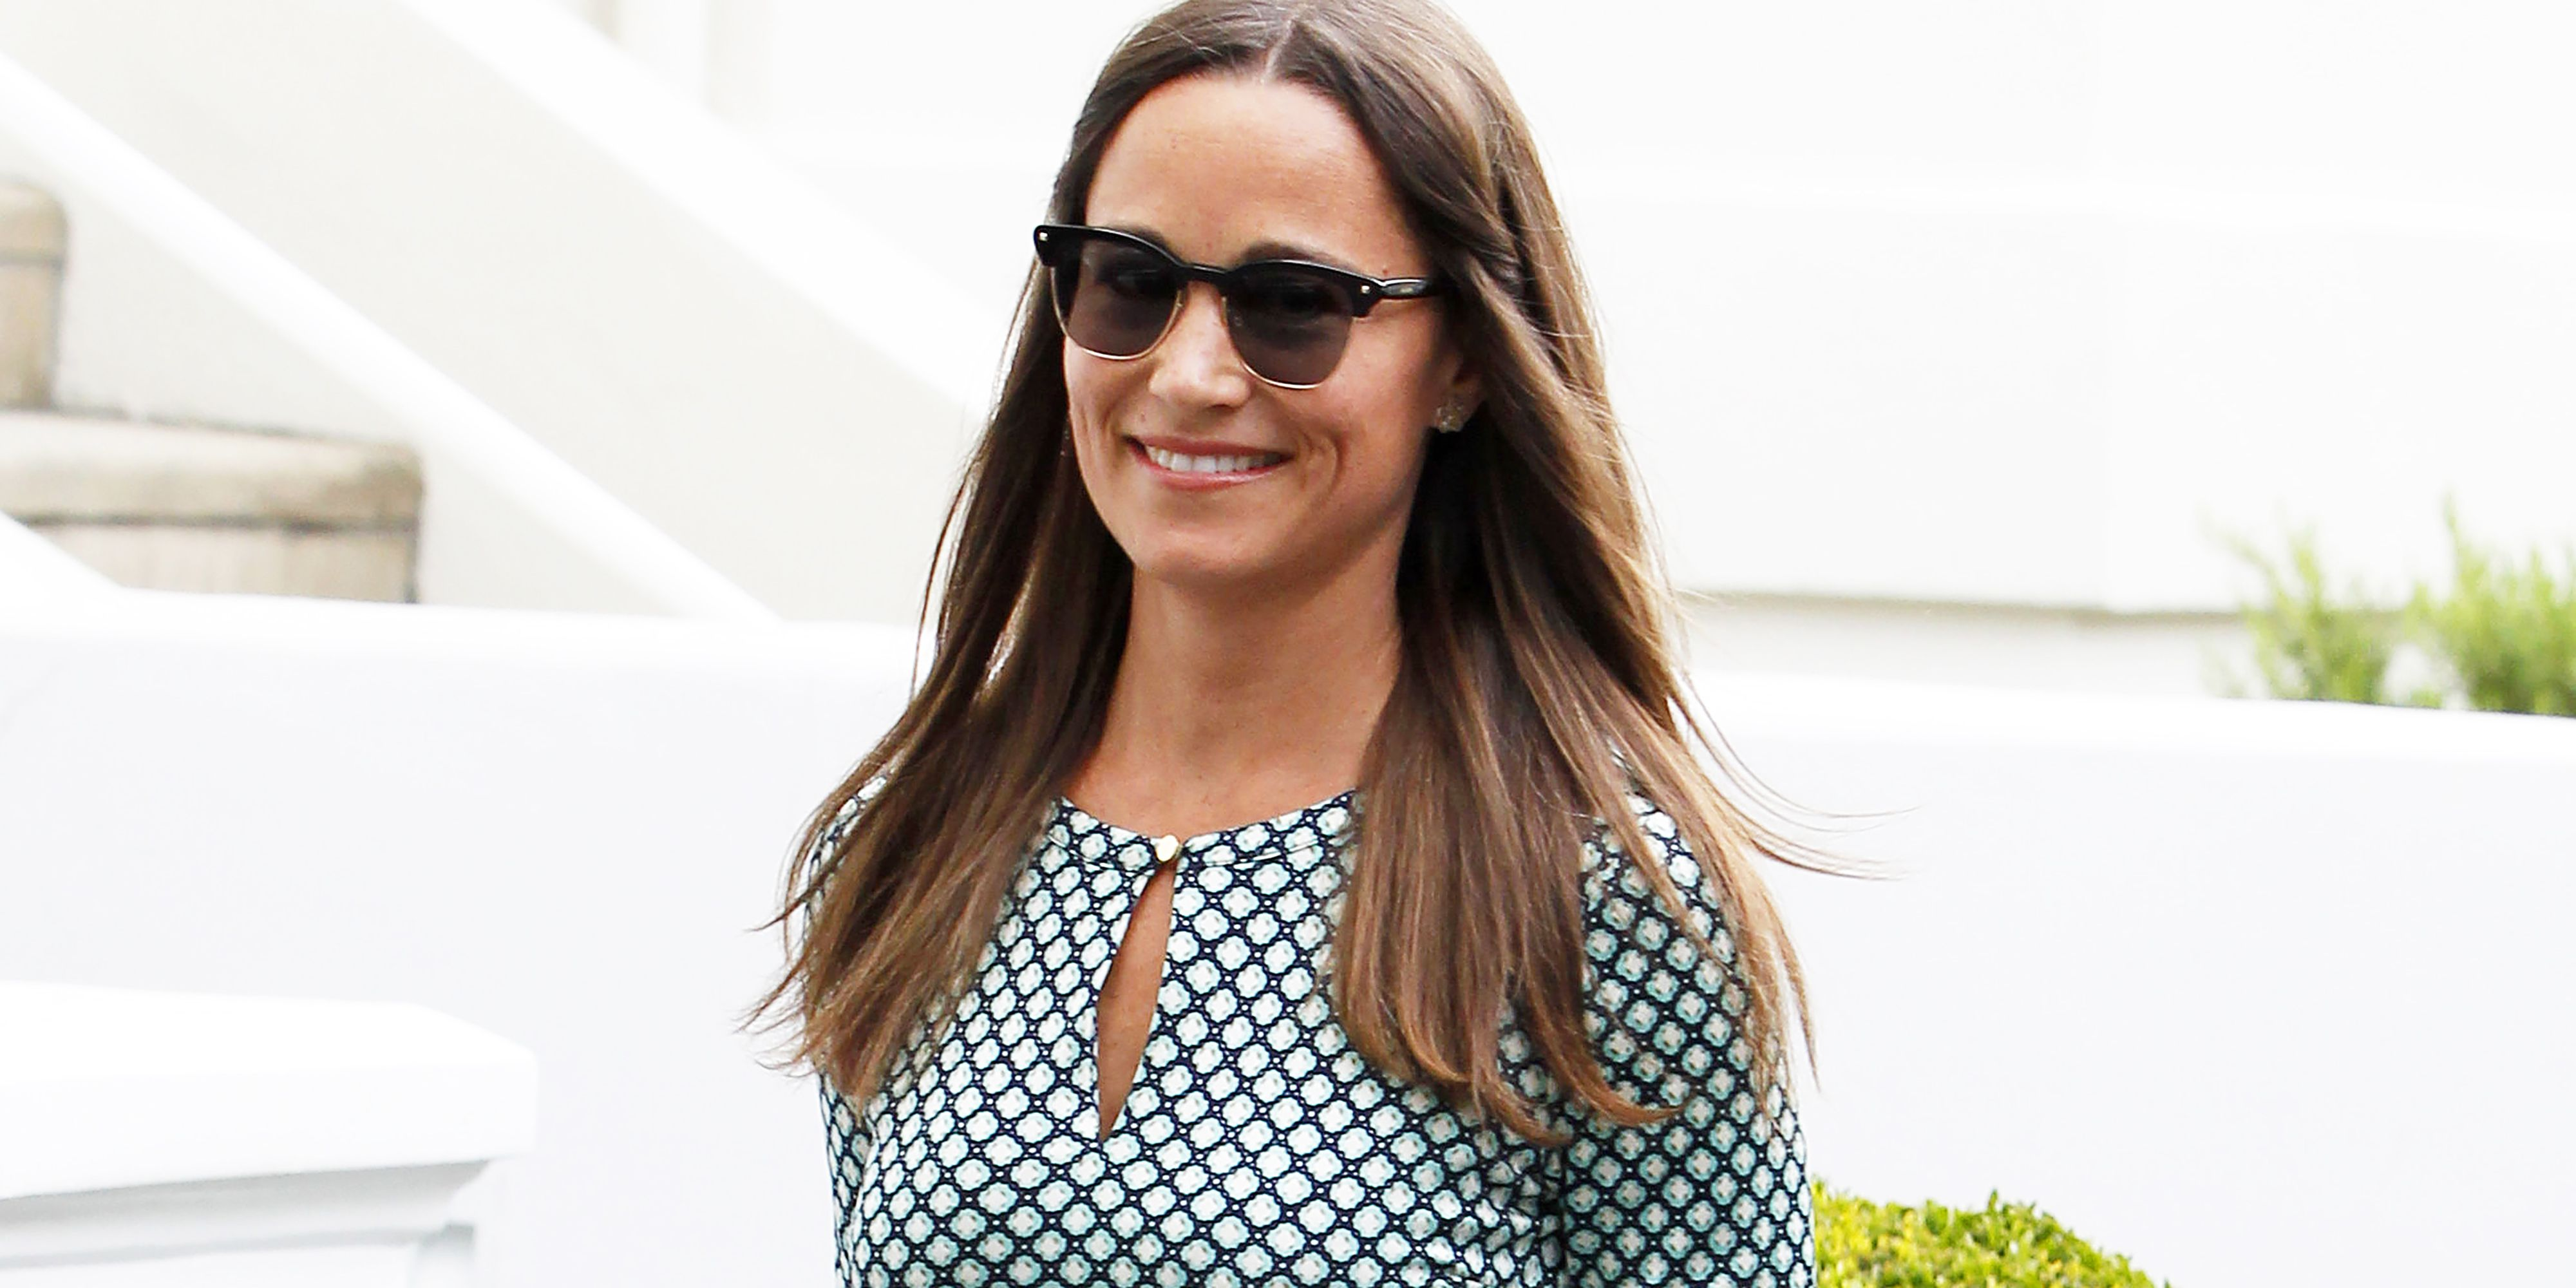 Pippa Middleton out and about, London, UK - 21 Jul 2016